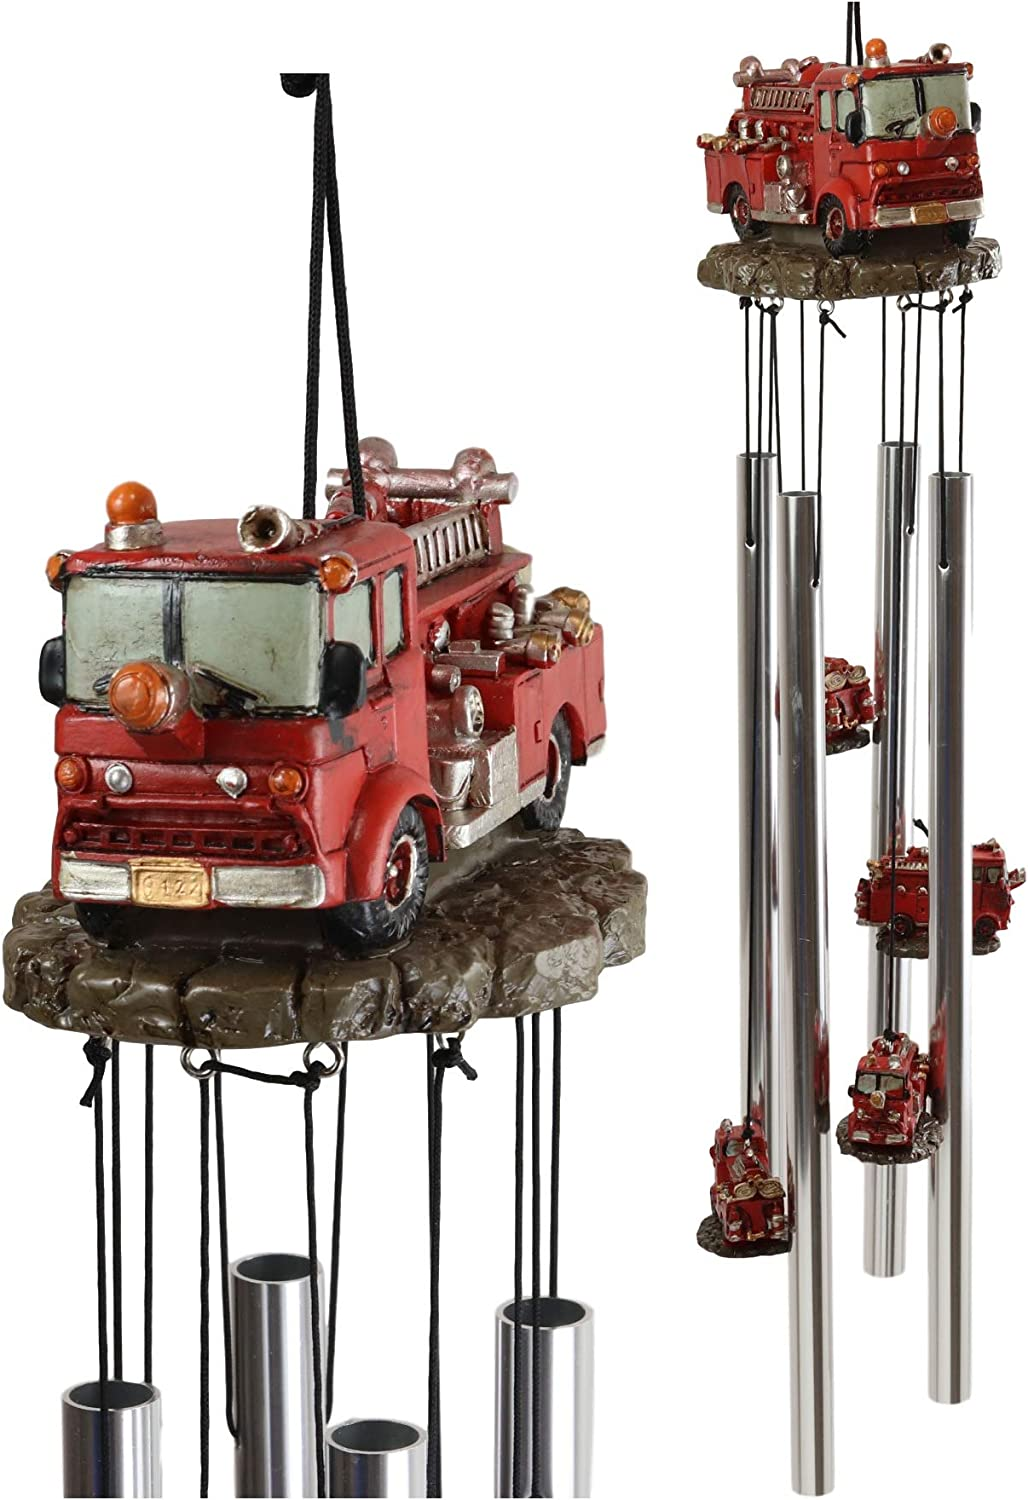 Ebros Gift Decorative Red Fire Model Truck Relax Resonant Engine 70% OFF Outlet Year-end gift